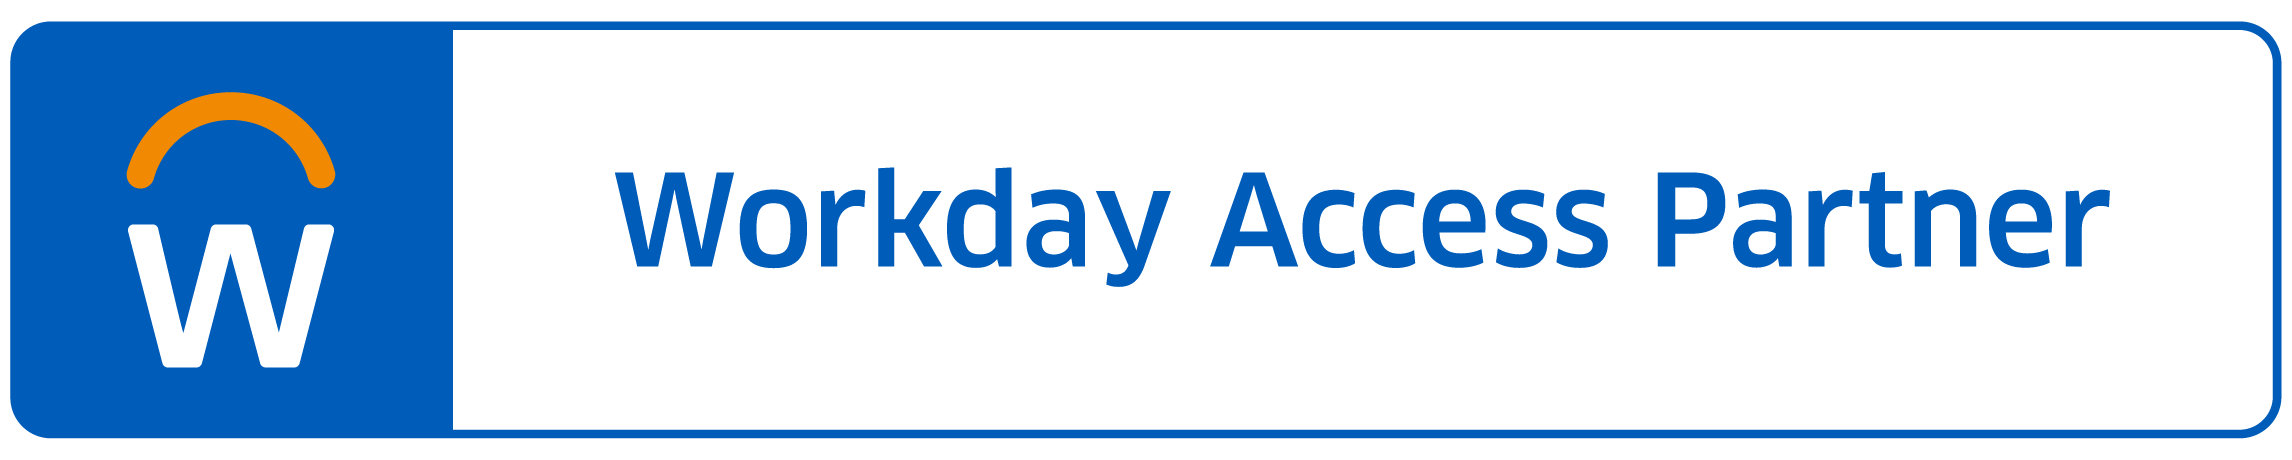 Press Release - Security Watchdog announces Workday Access Partner